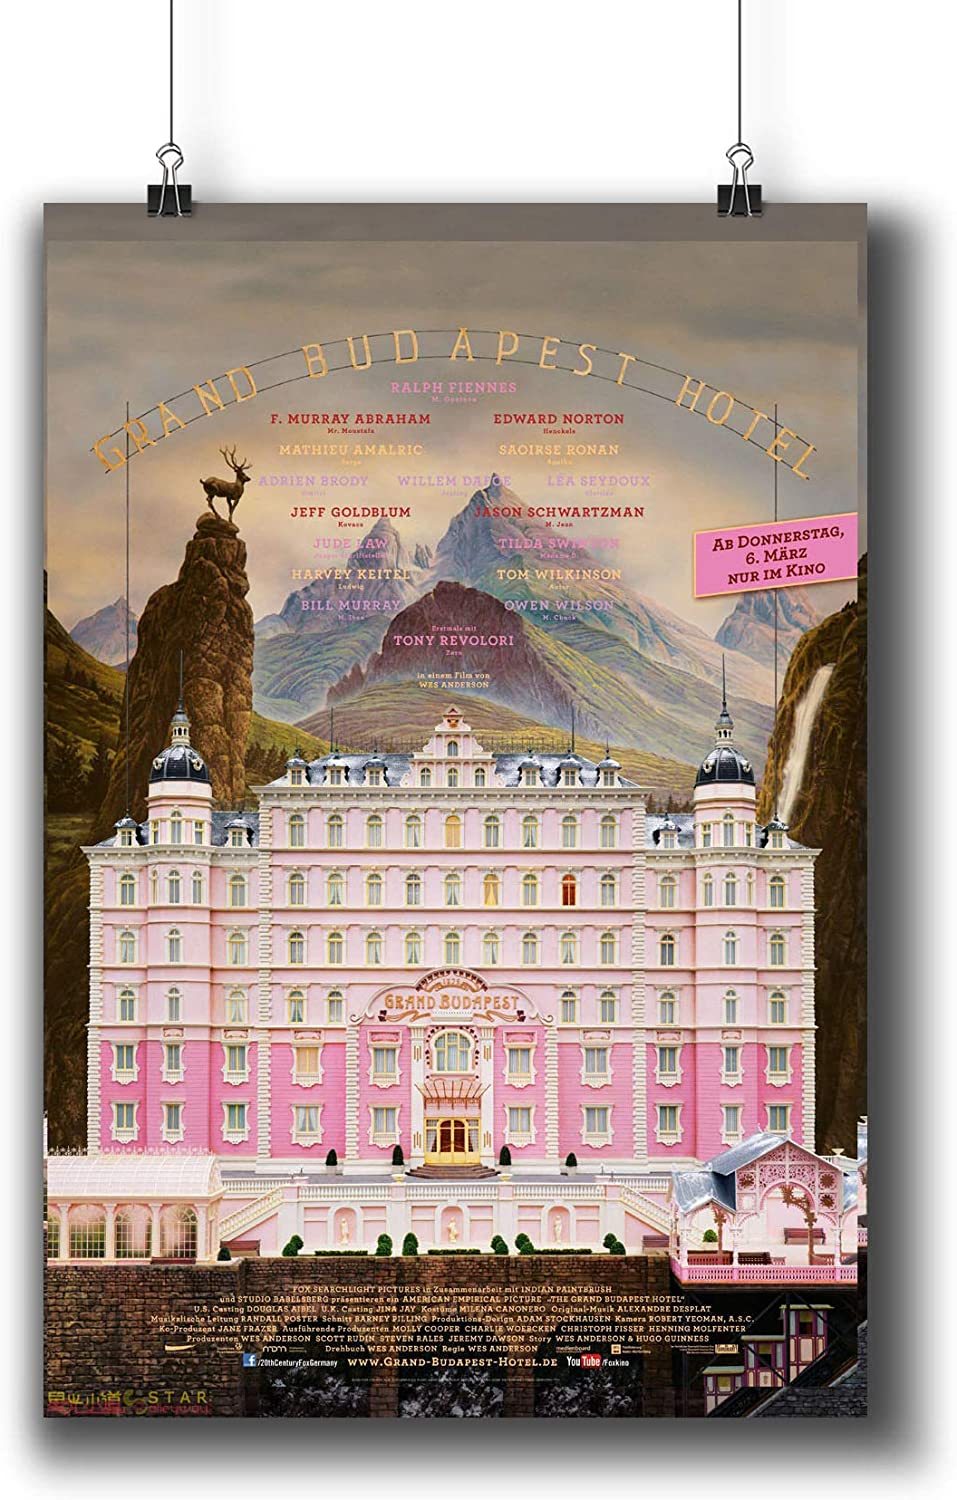 The Grand Budapest Hotel (2014) Movie Poster Small Prints 803-004,Wall Art Decor for Dorm Bedroom Living Room (A3|11x17inch|29x42cm)